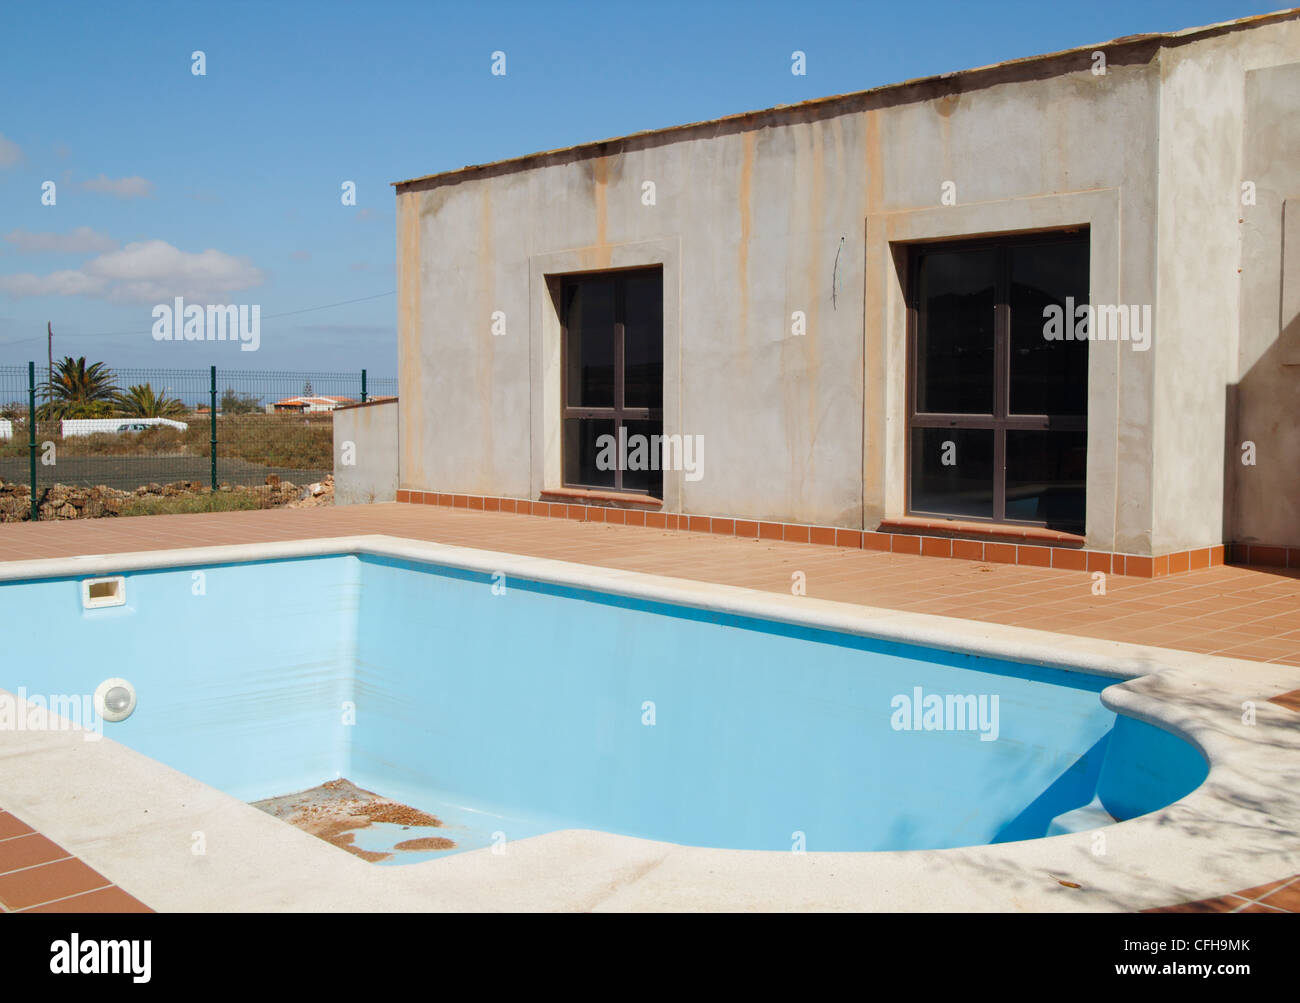 Empty swimming pool next to house at unfinished/abandoned building ...